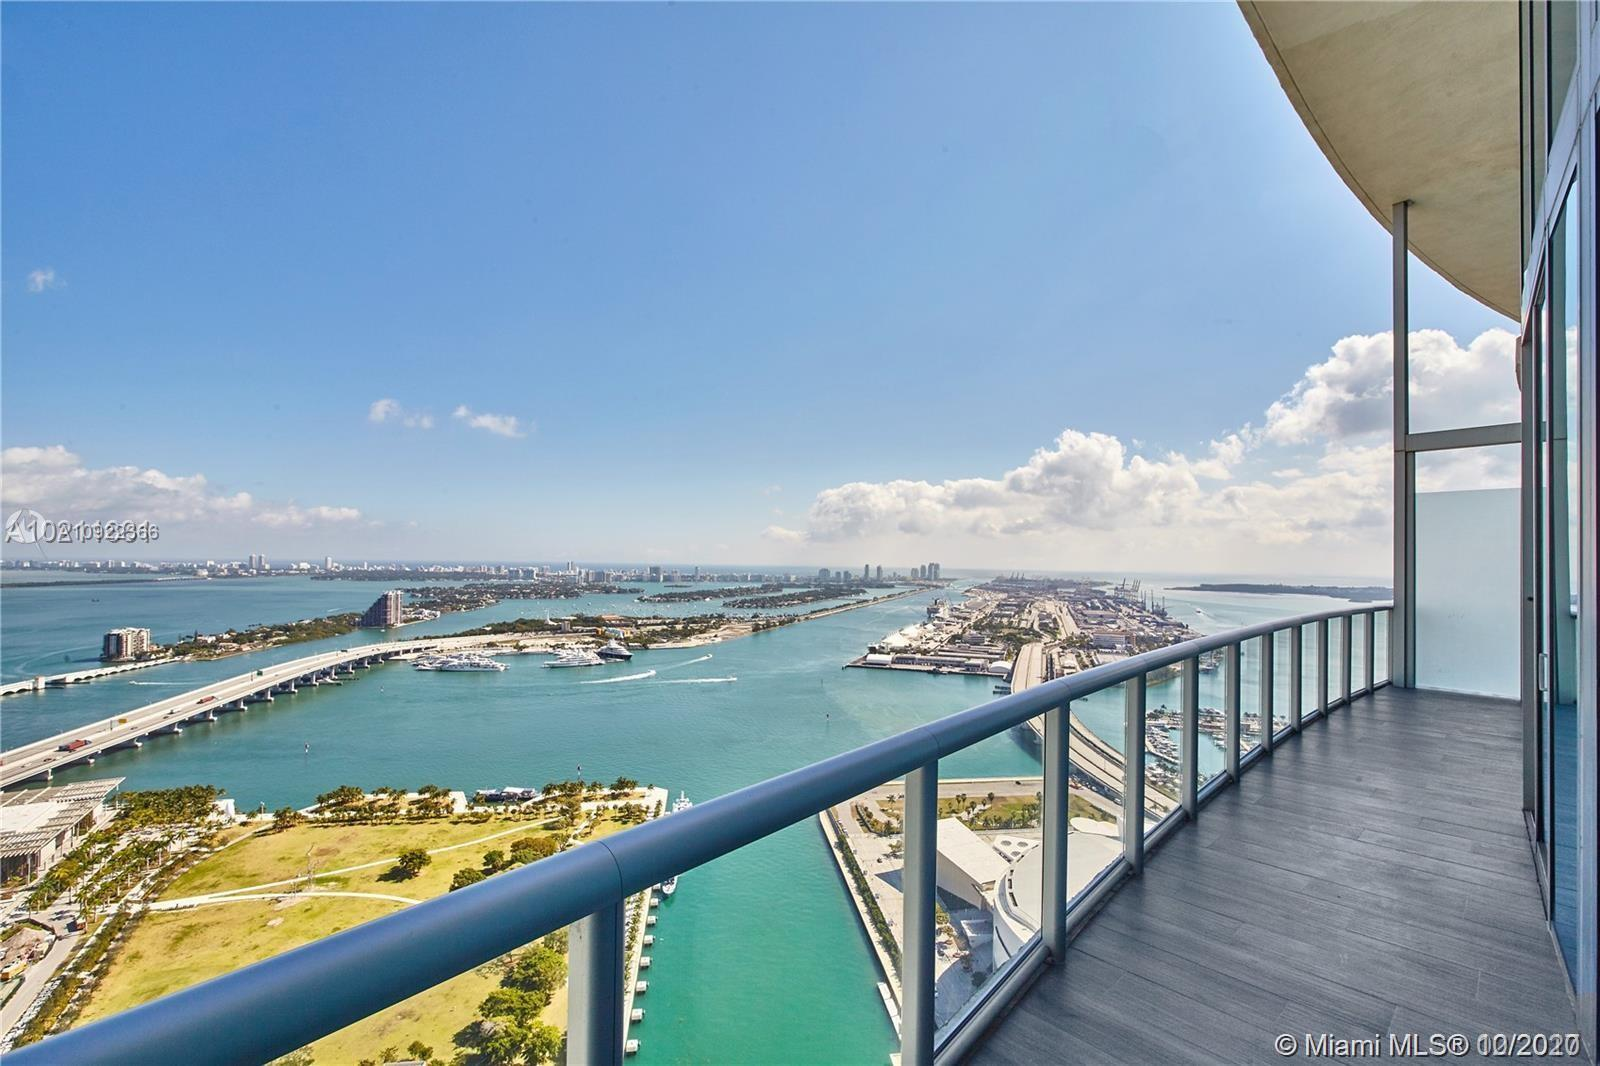 Spectacular view of the ocean, with an exquisite panoramic view of The Miami Port and all the cruise